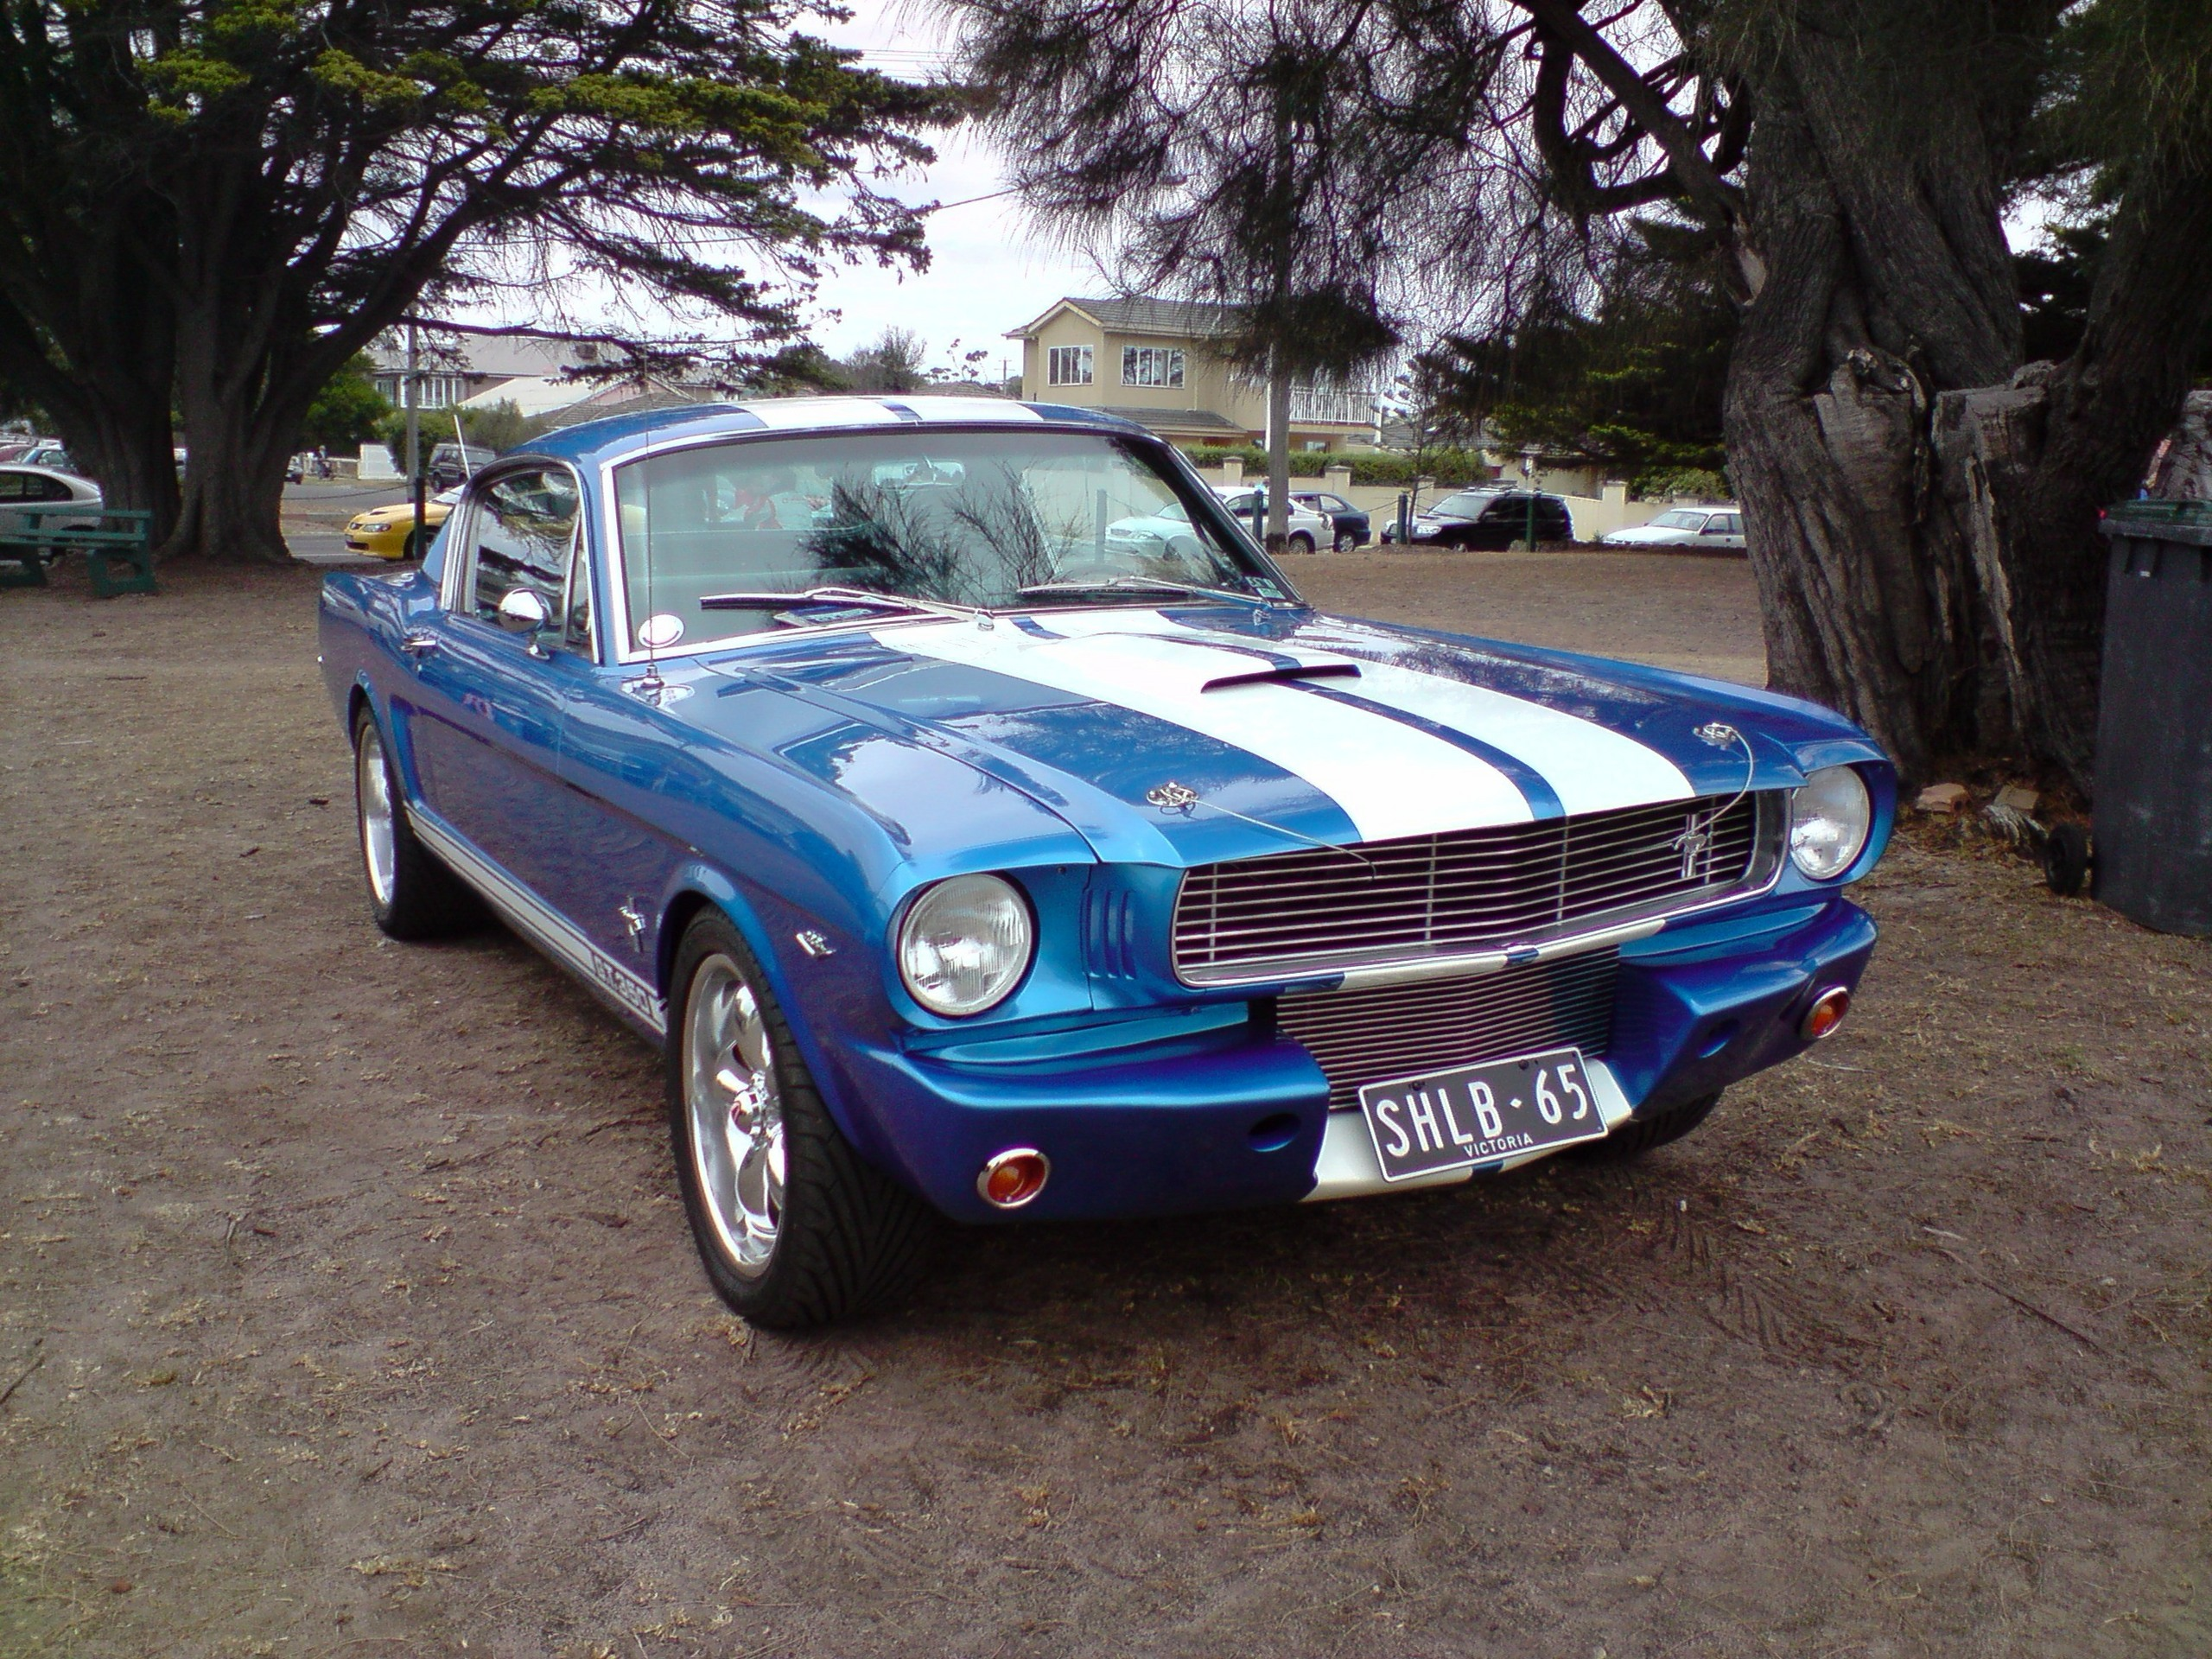 Great Www American Muscle Cars Com Pictures Inspiration - Classic ...